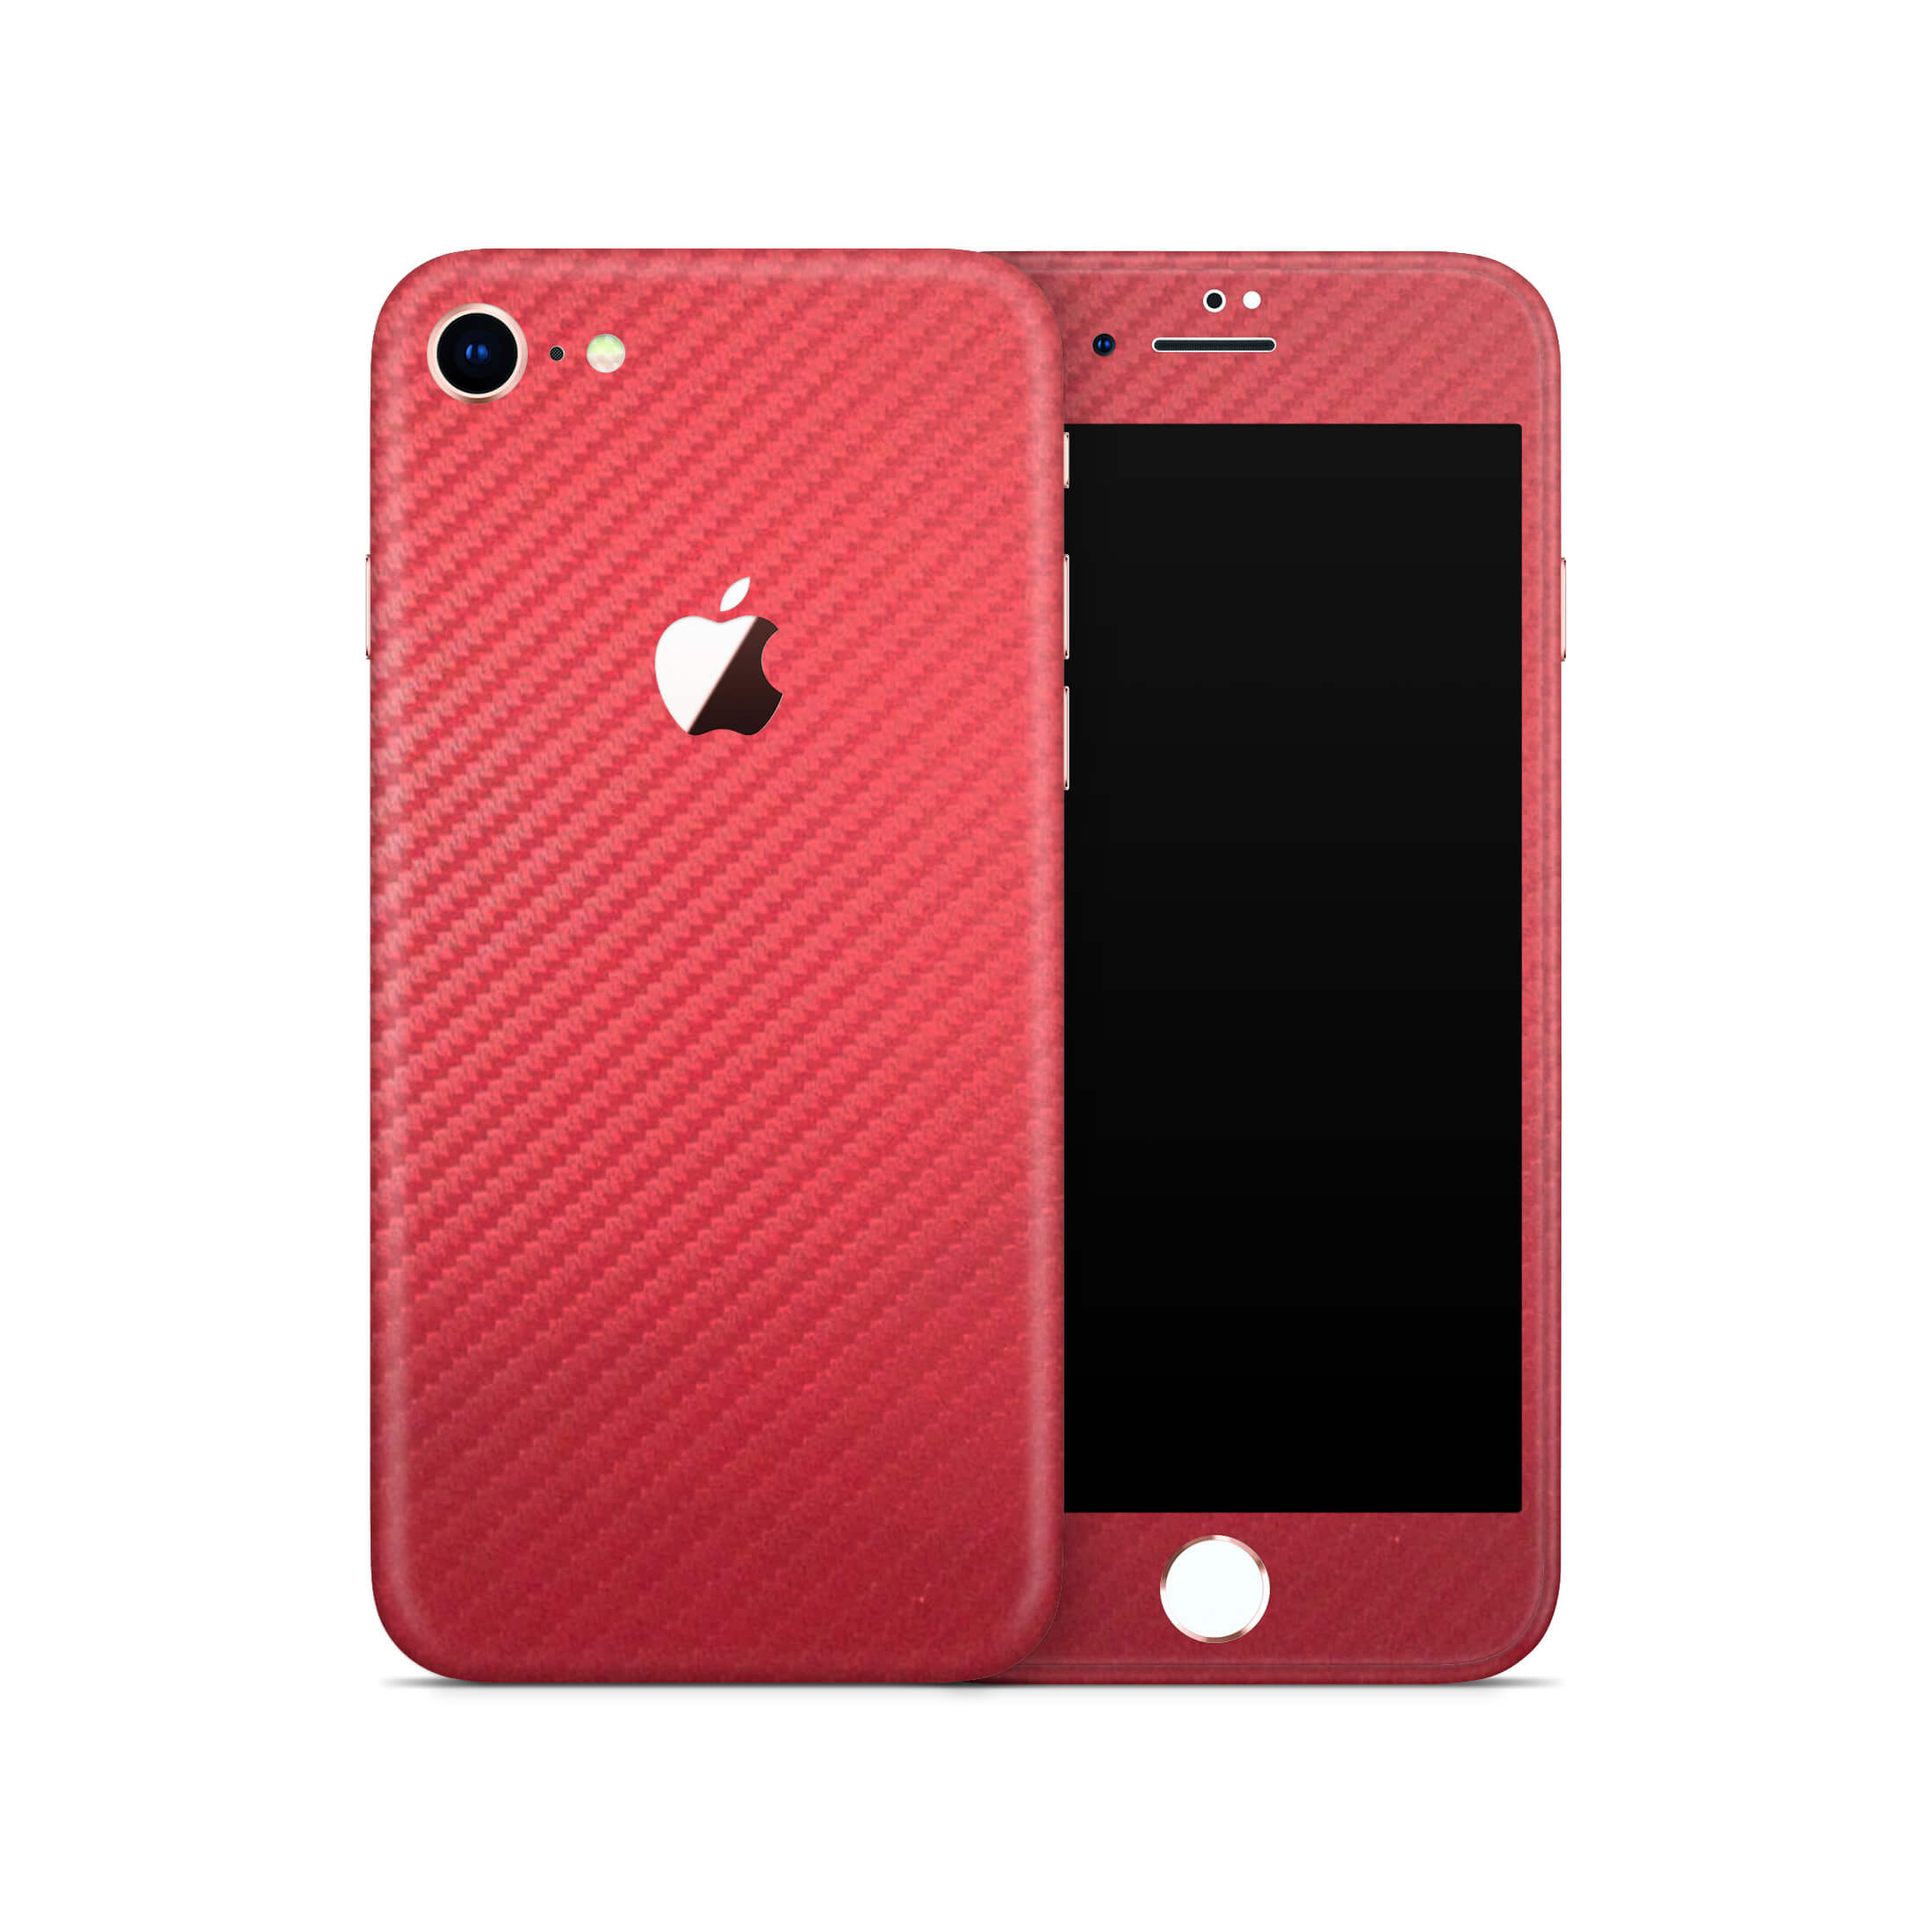 iPhone 8 - Carbon Fiber Red